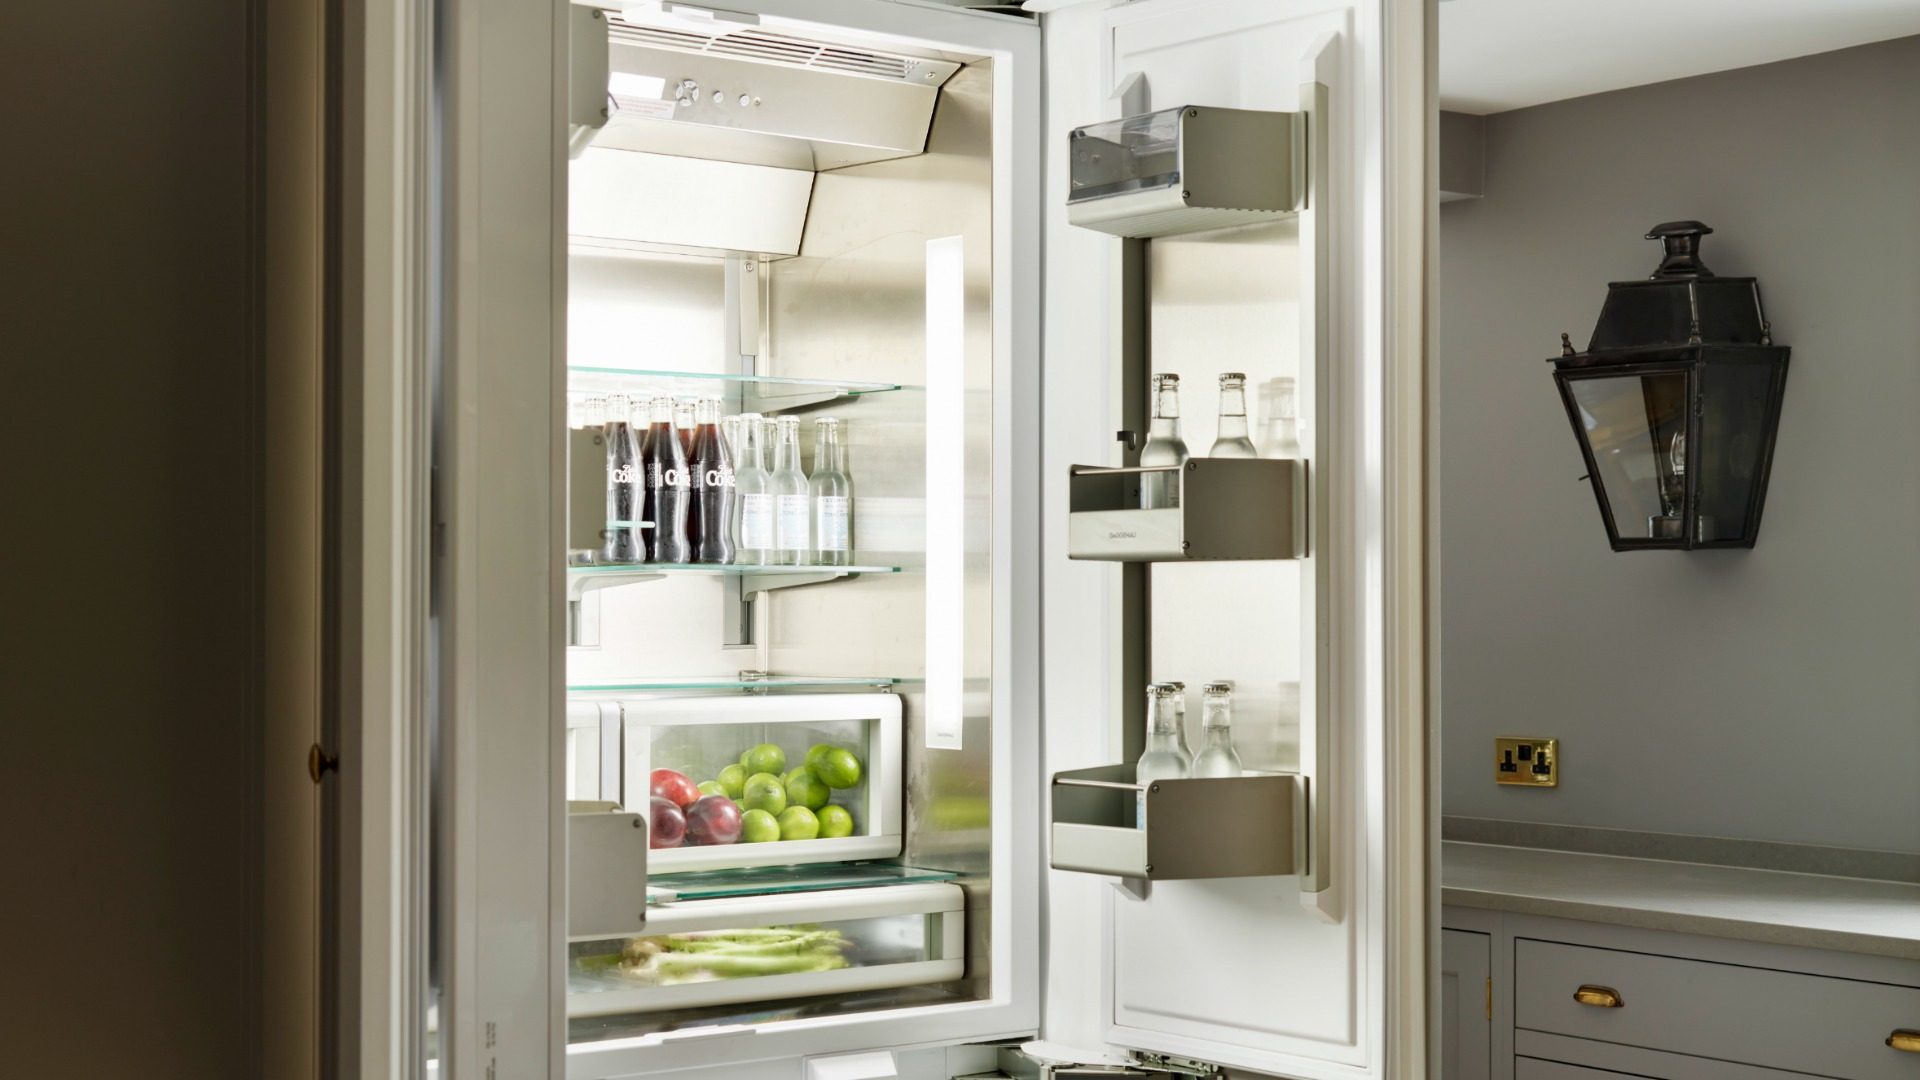 Gaggenau French Door Fridge Freezer - Humphrey Munson Blog